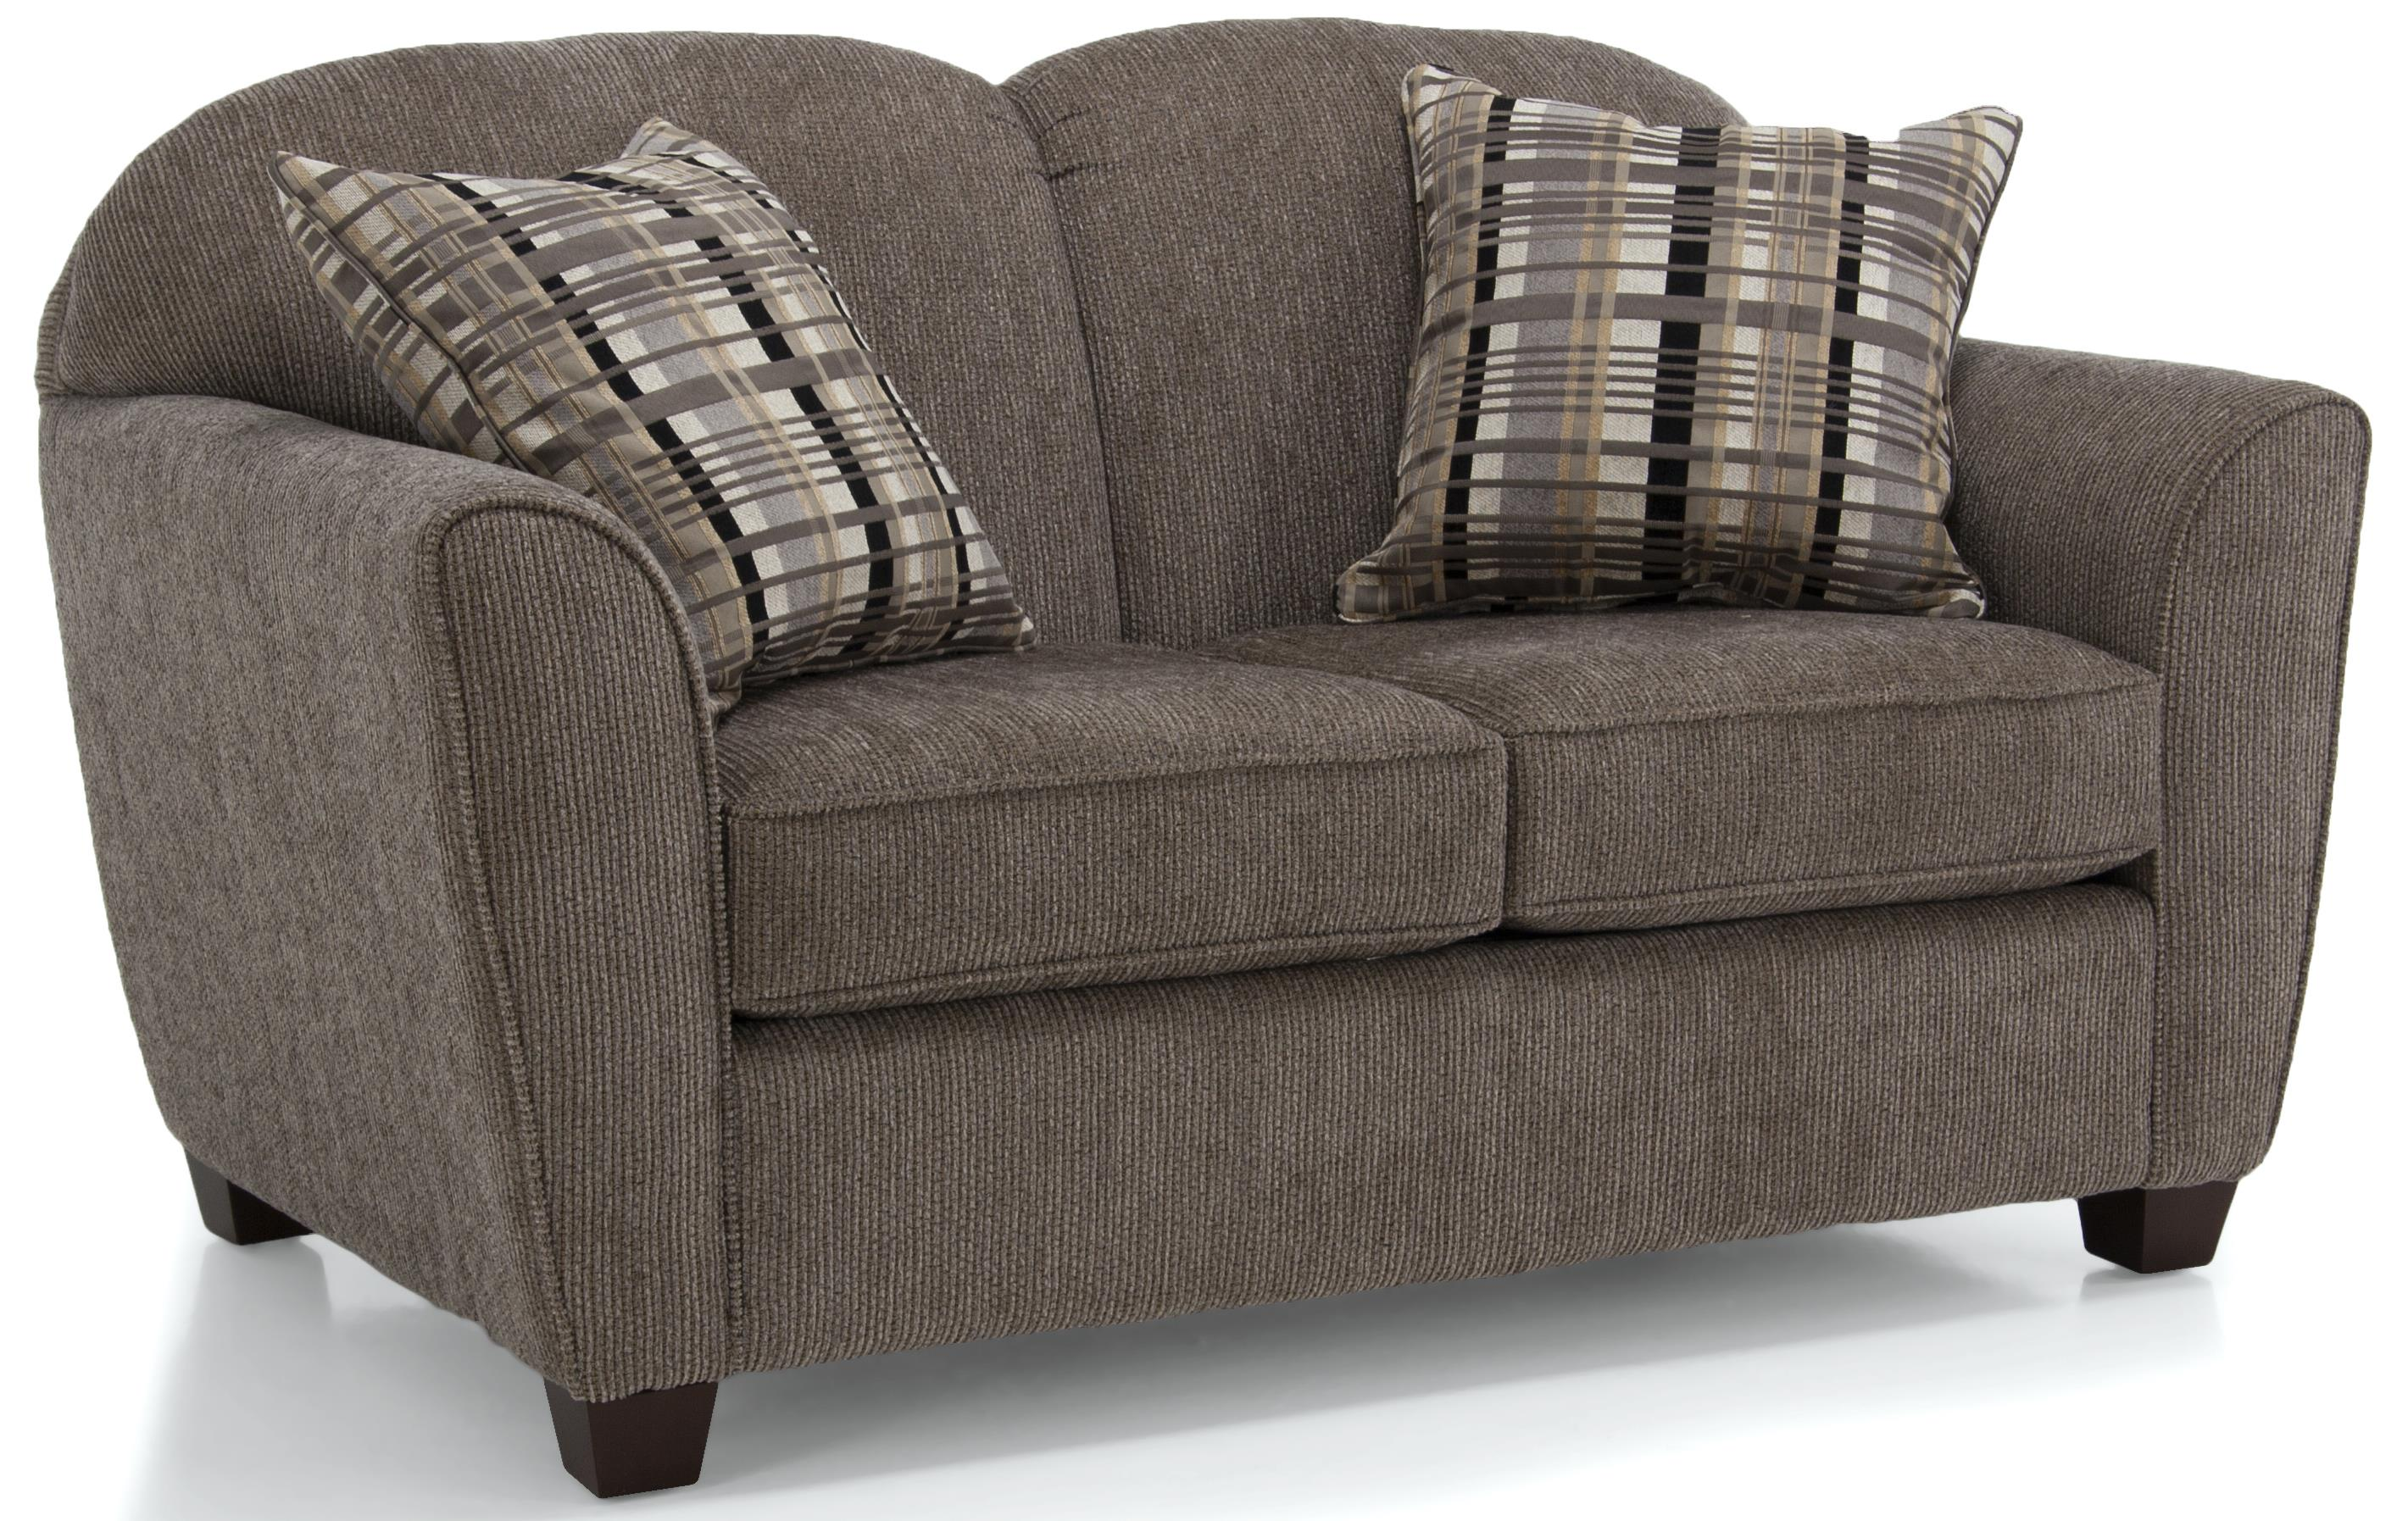 2317 Loveseat by Decor-Rest at Upper Room Home Furnishings